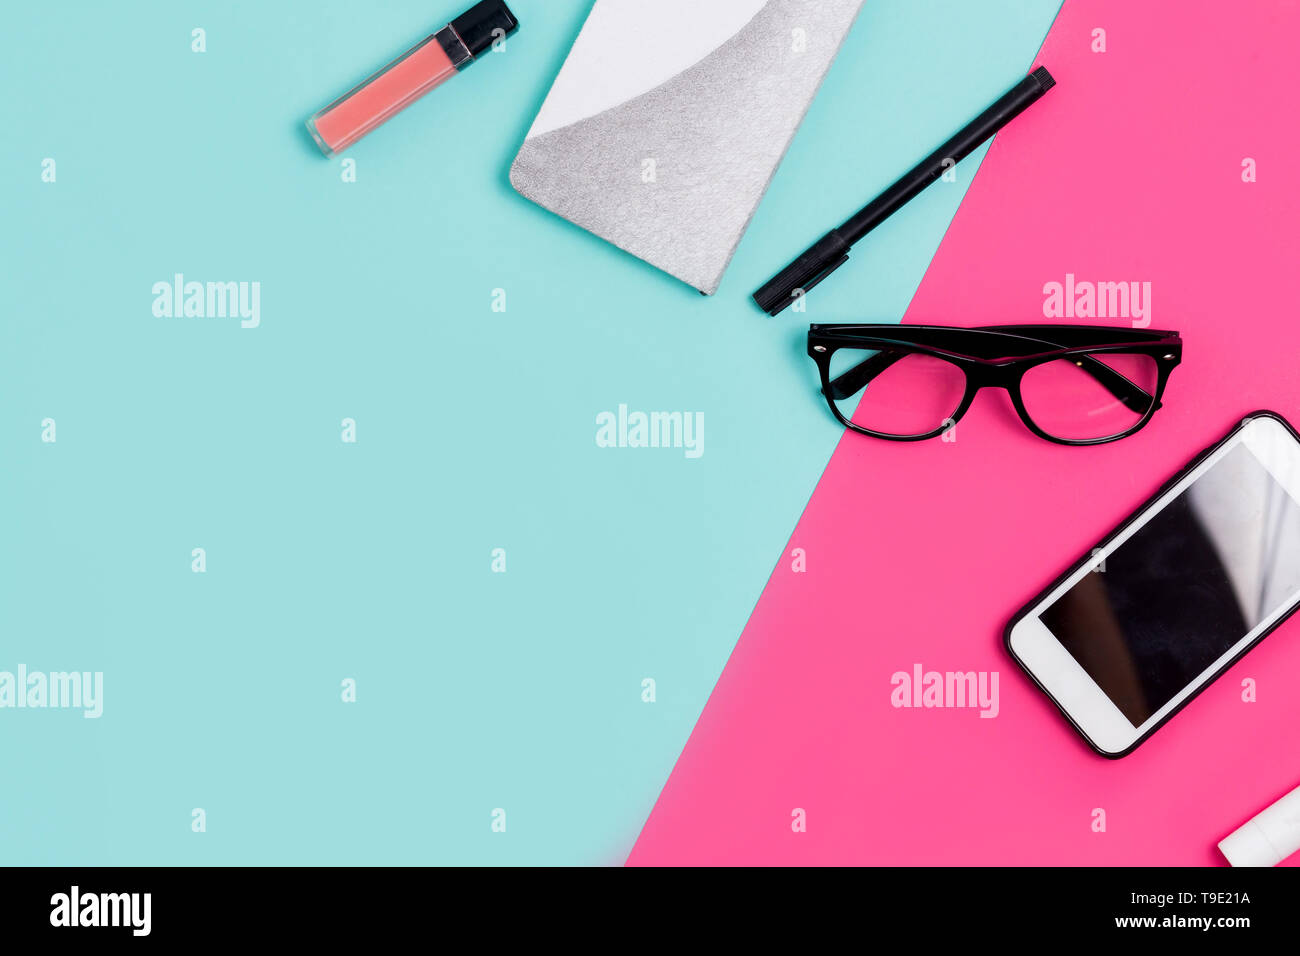 Flat lay traveler and office accessories on a colored background with copy space. Notebook, smartphone, glasses, pen, lipstick, lip gloss on the table Stock Photo